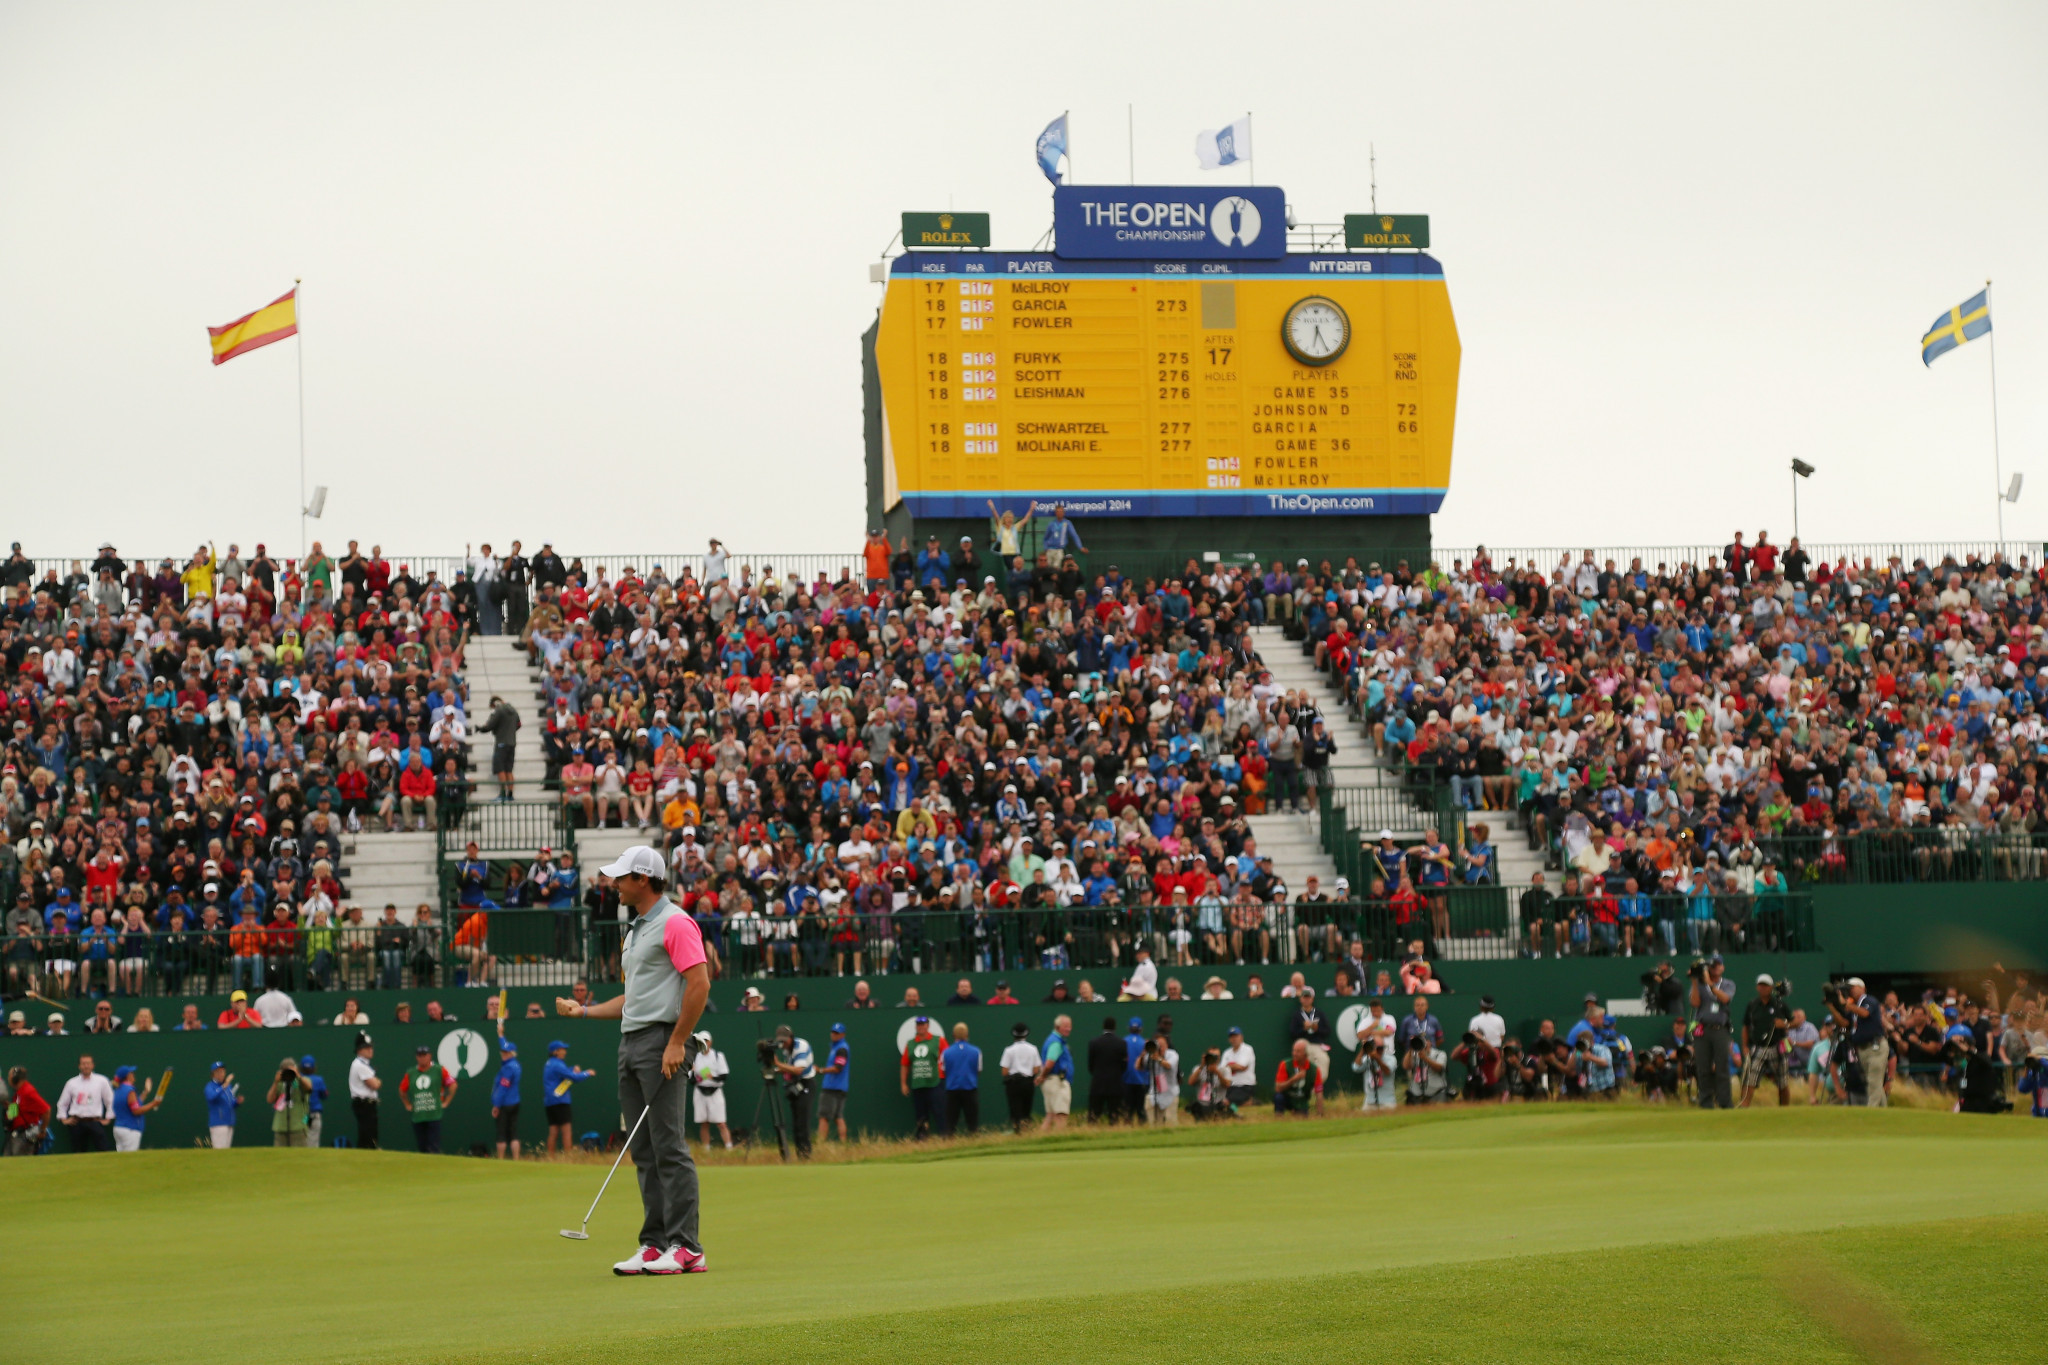 Royal Liverpool to host The Open again in 2022